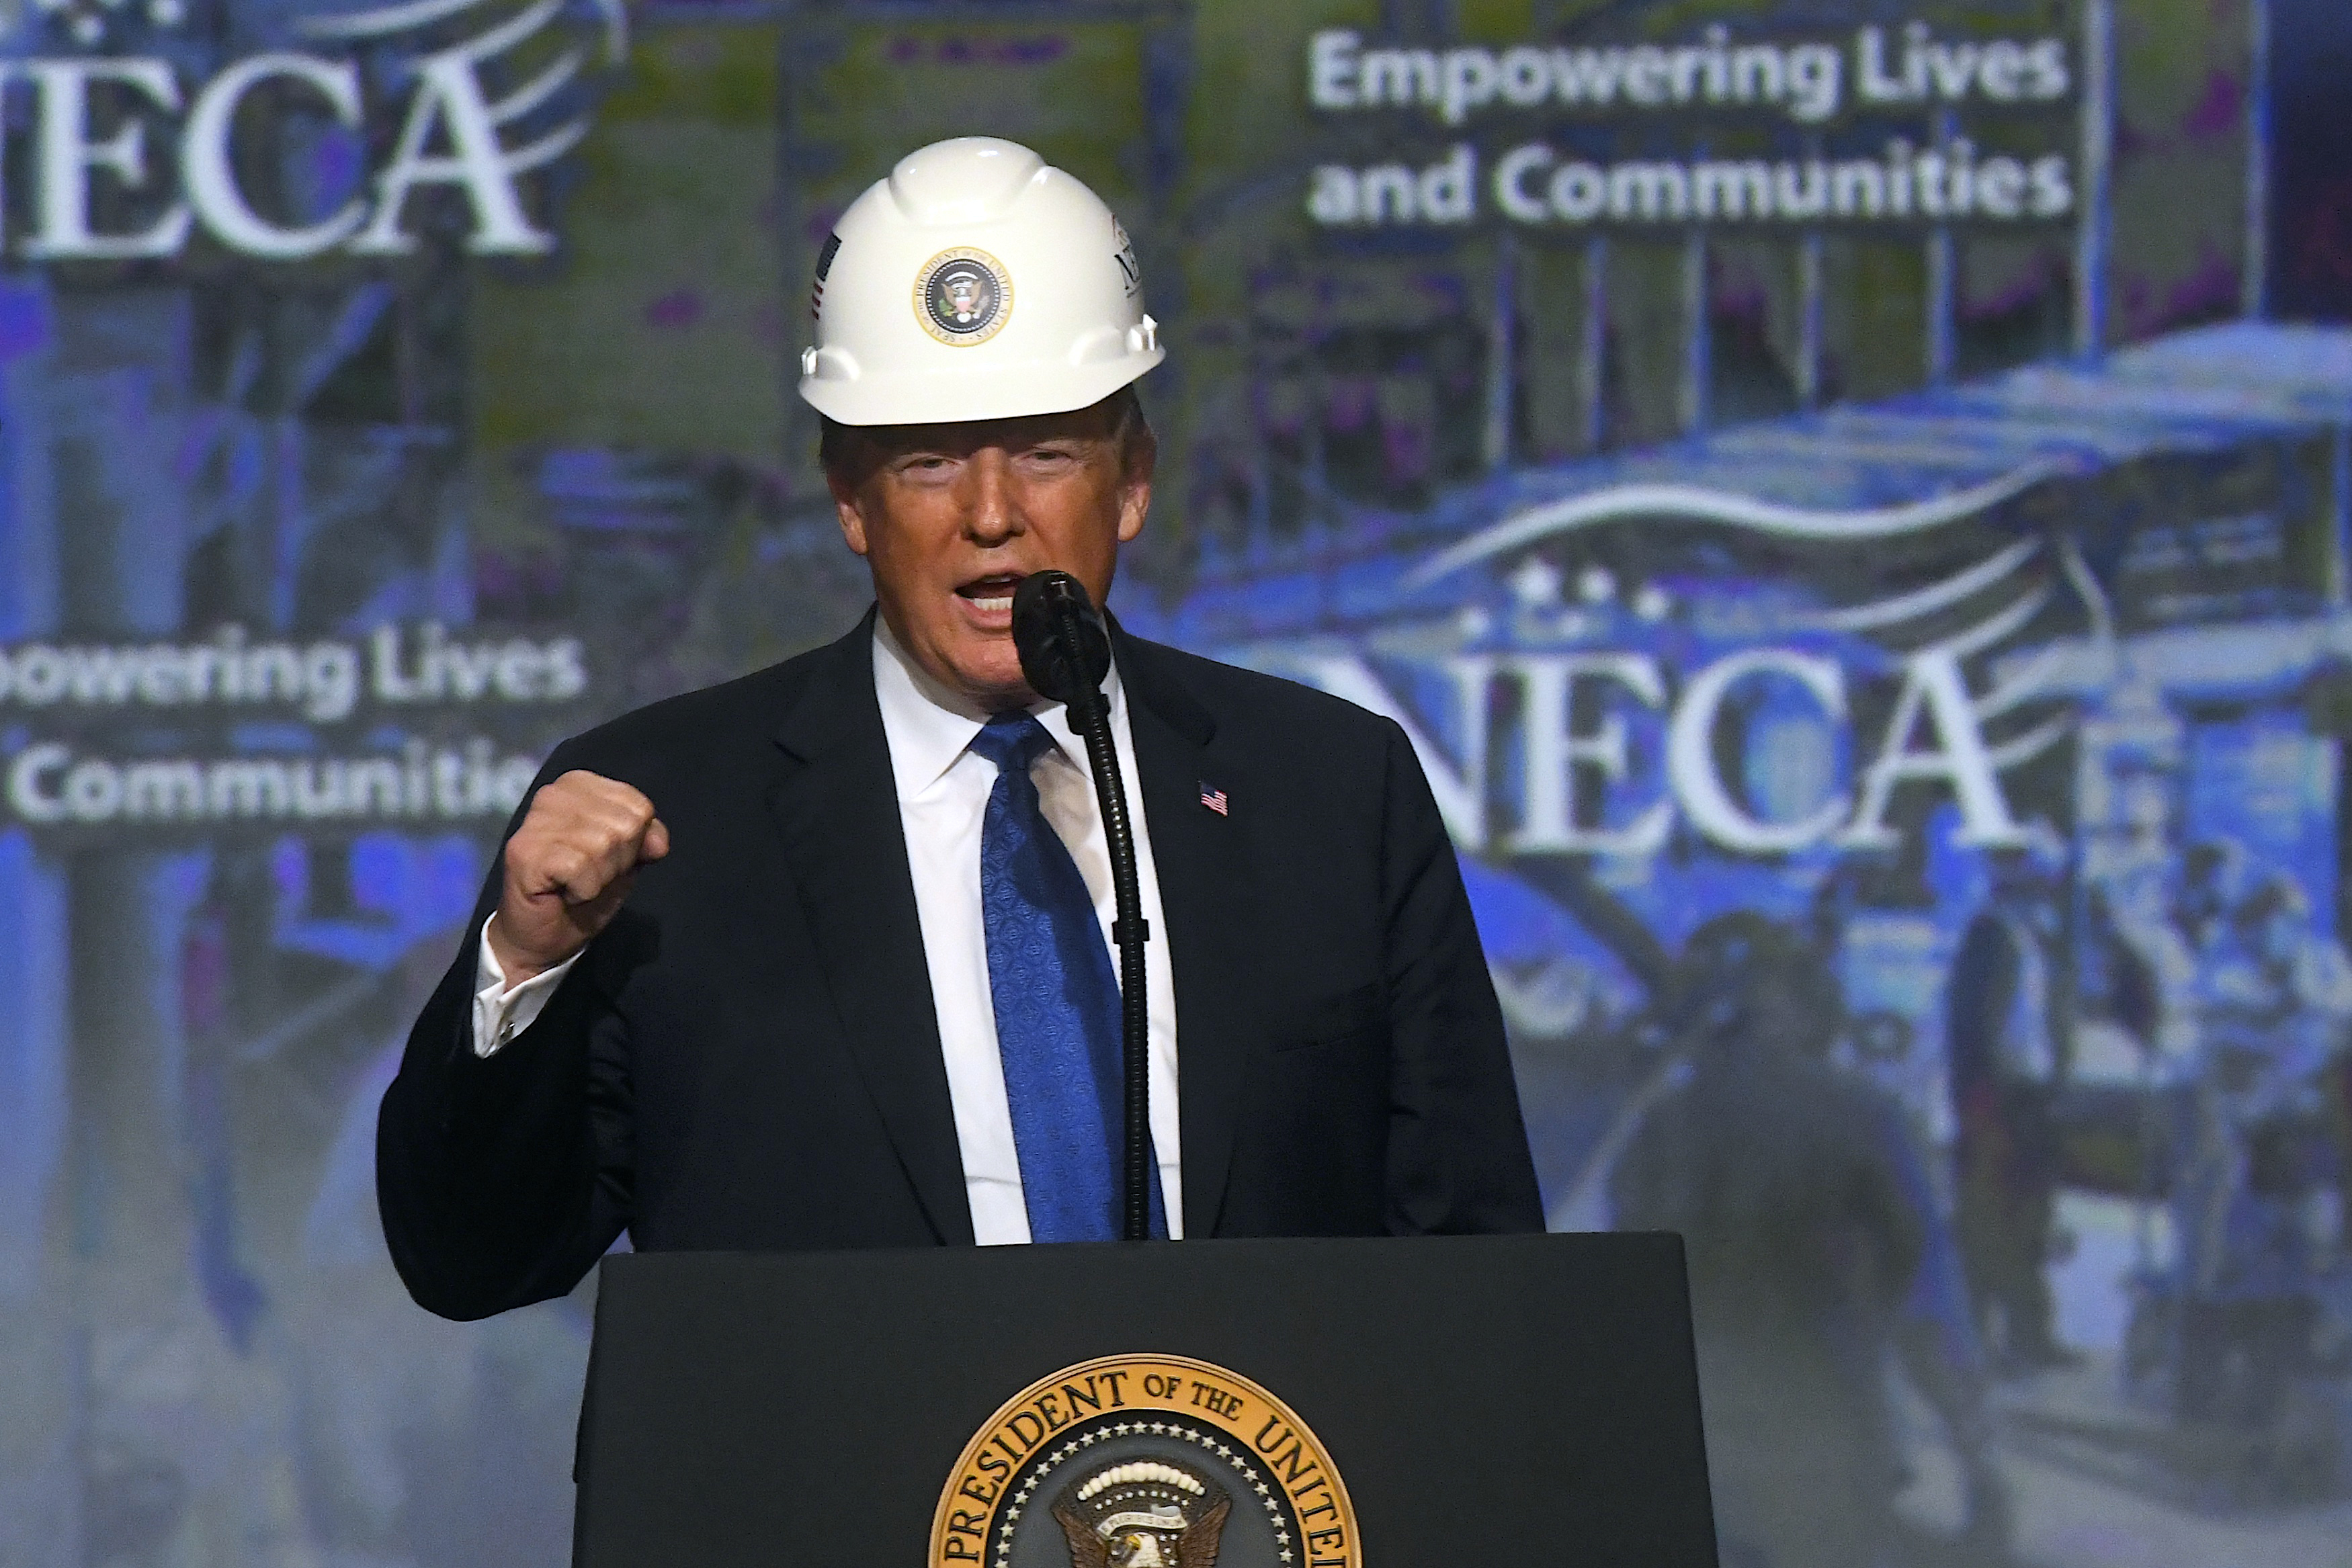 PHILADELPHIA, PA - OCTOBER 2: U.S. President Donald Trump wears a hard hat as he addresses the National Electrical Contractors Convention on October 2, 2018 in Philadelphia, Pennsylvania. The National Electrical Contractors Convention is the largest gathering of manufacturers and distributors for electrical professionals in North America. (Photo by Mark Makela/Getty Images)